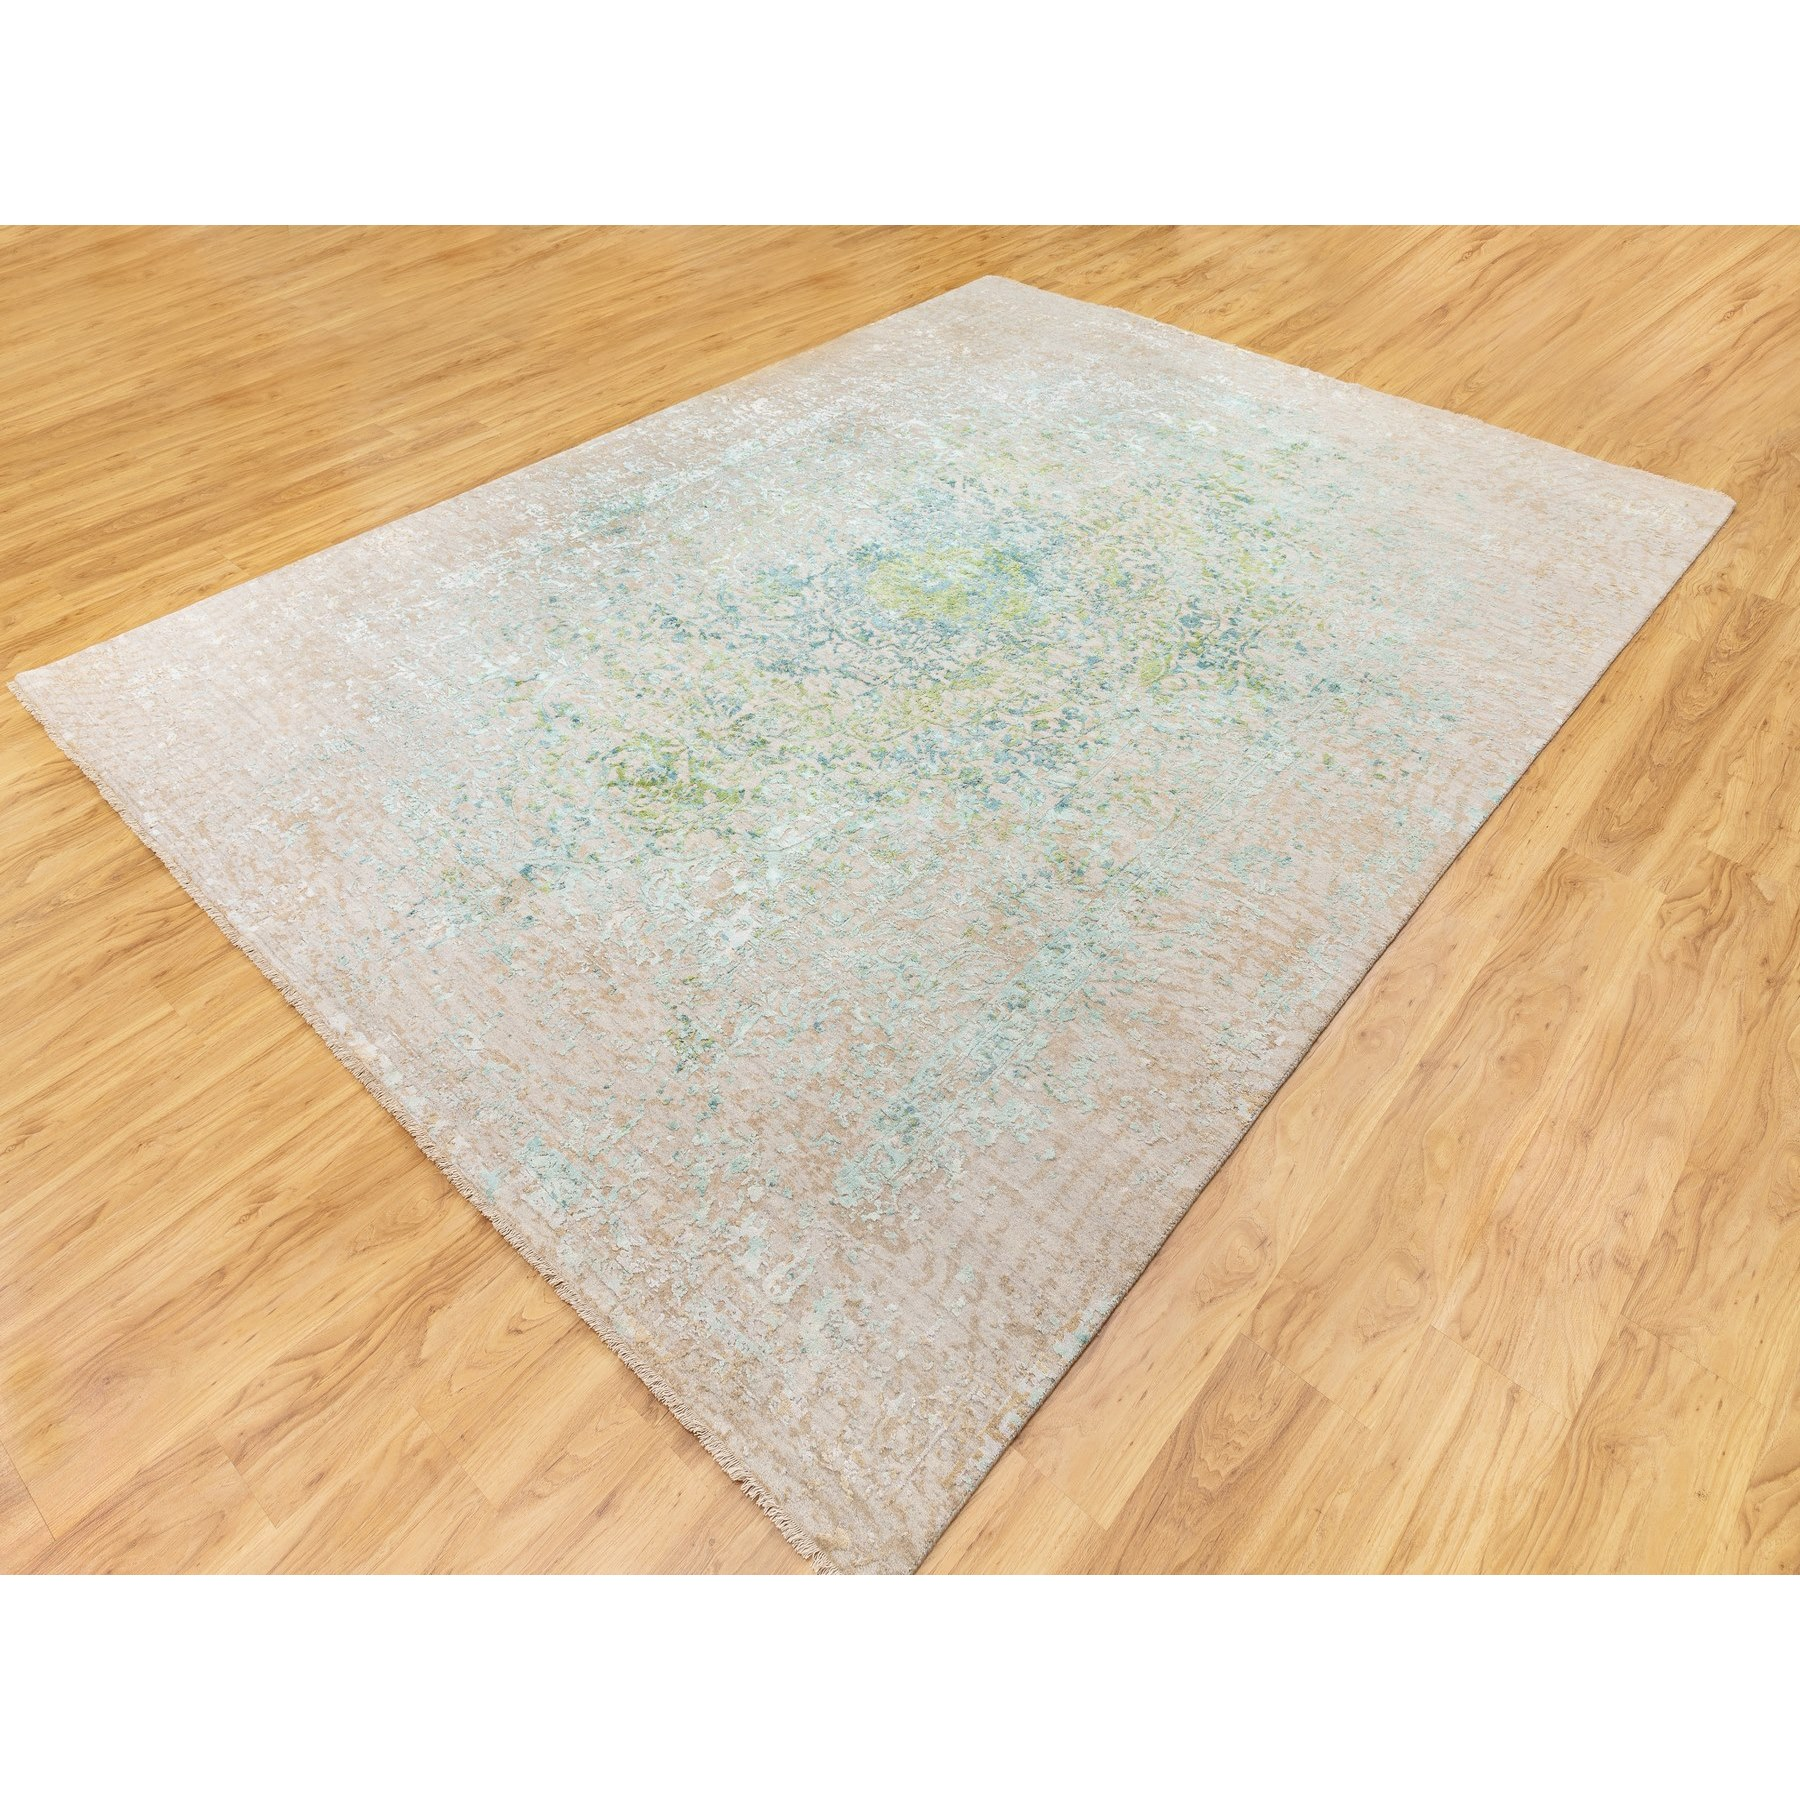 9'x12' Ivory Touch Of Green Pure Silk With Textured Wool Hand Knotted Oriental Rug